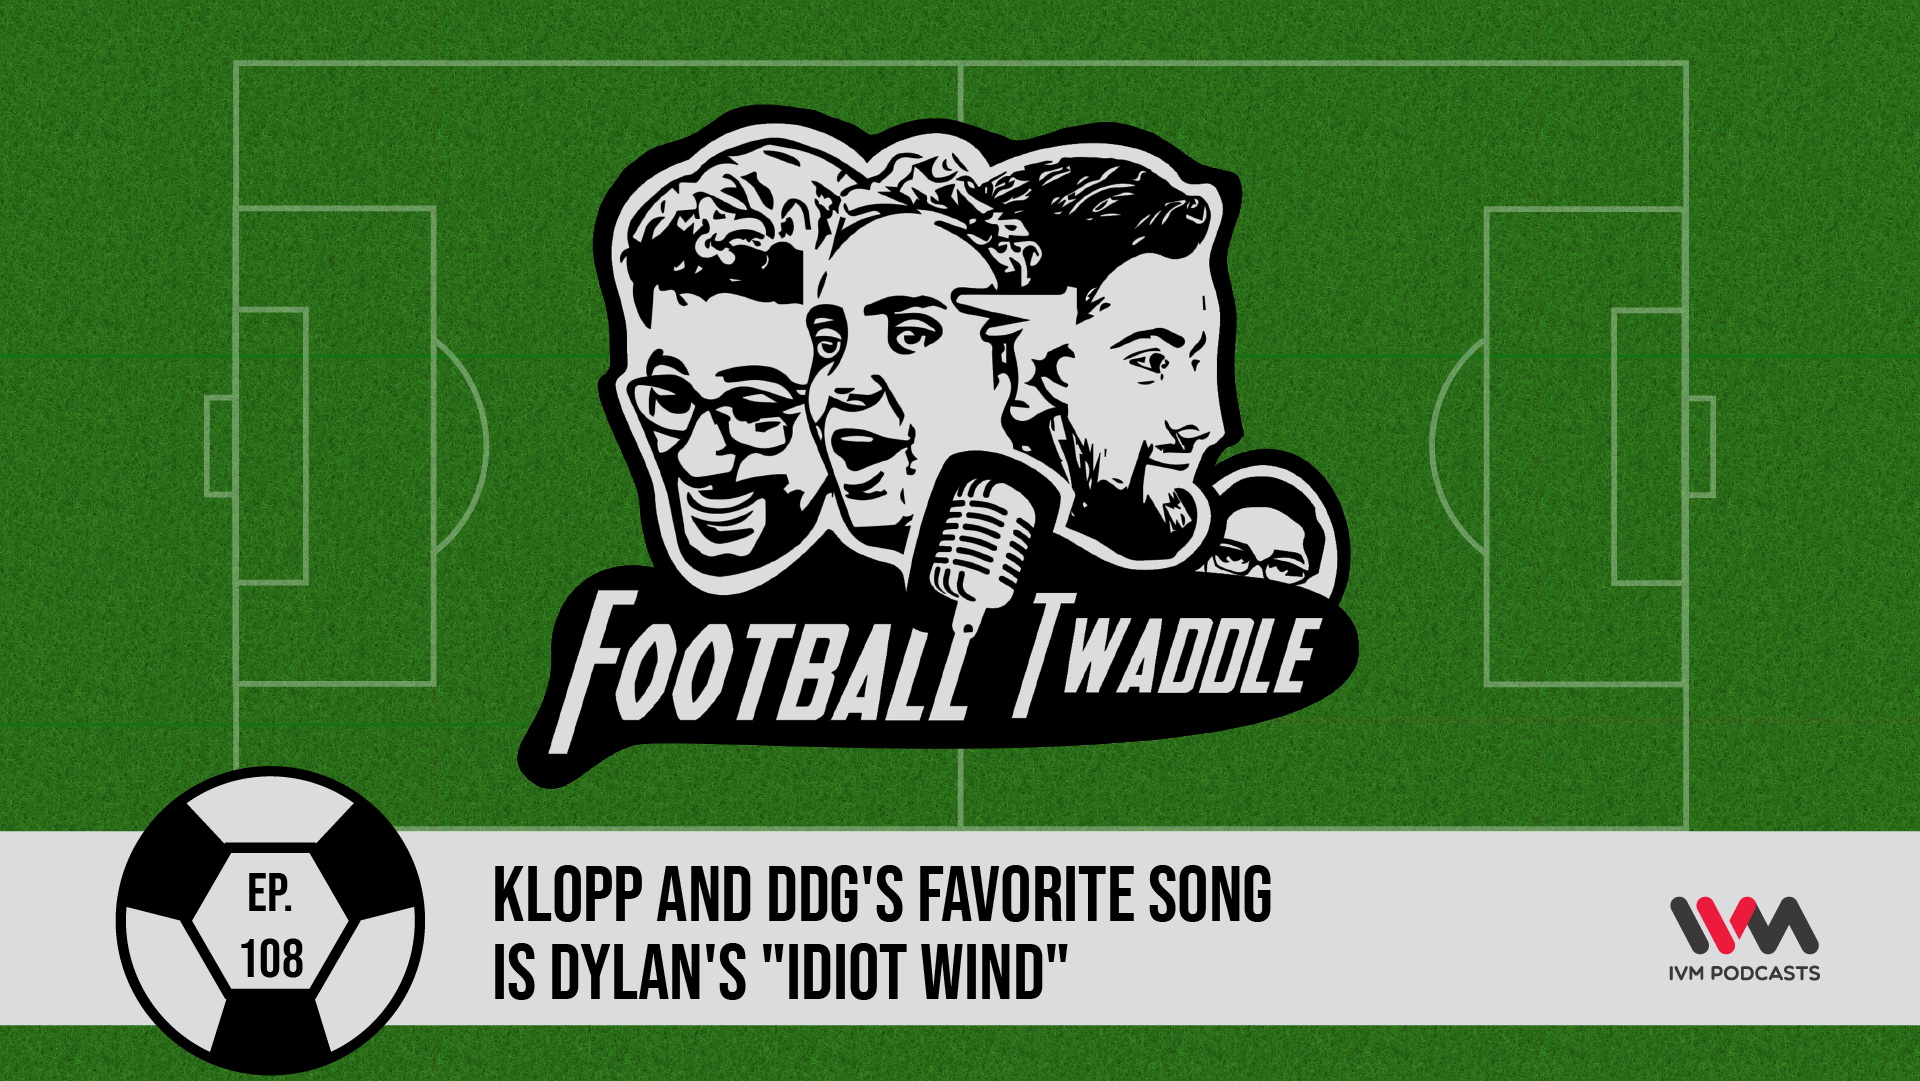 FootballTwaddleEpisode108.png